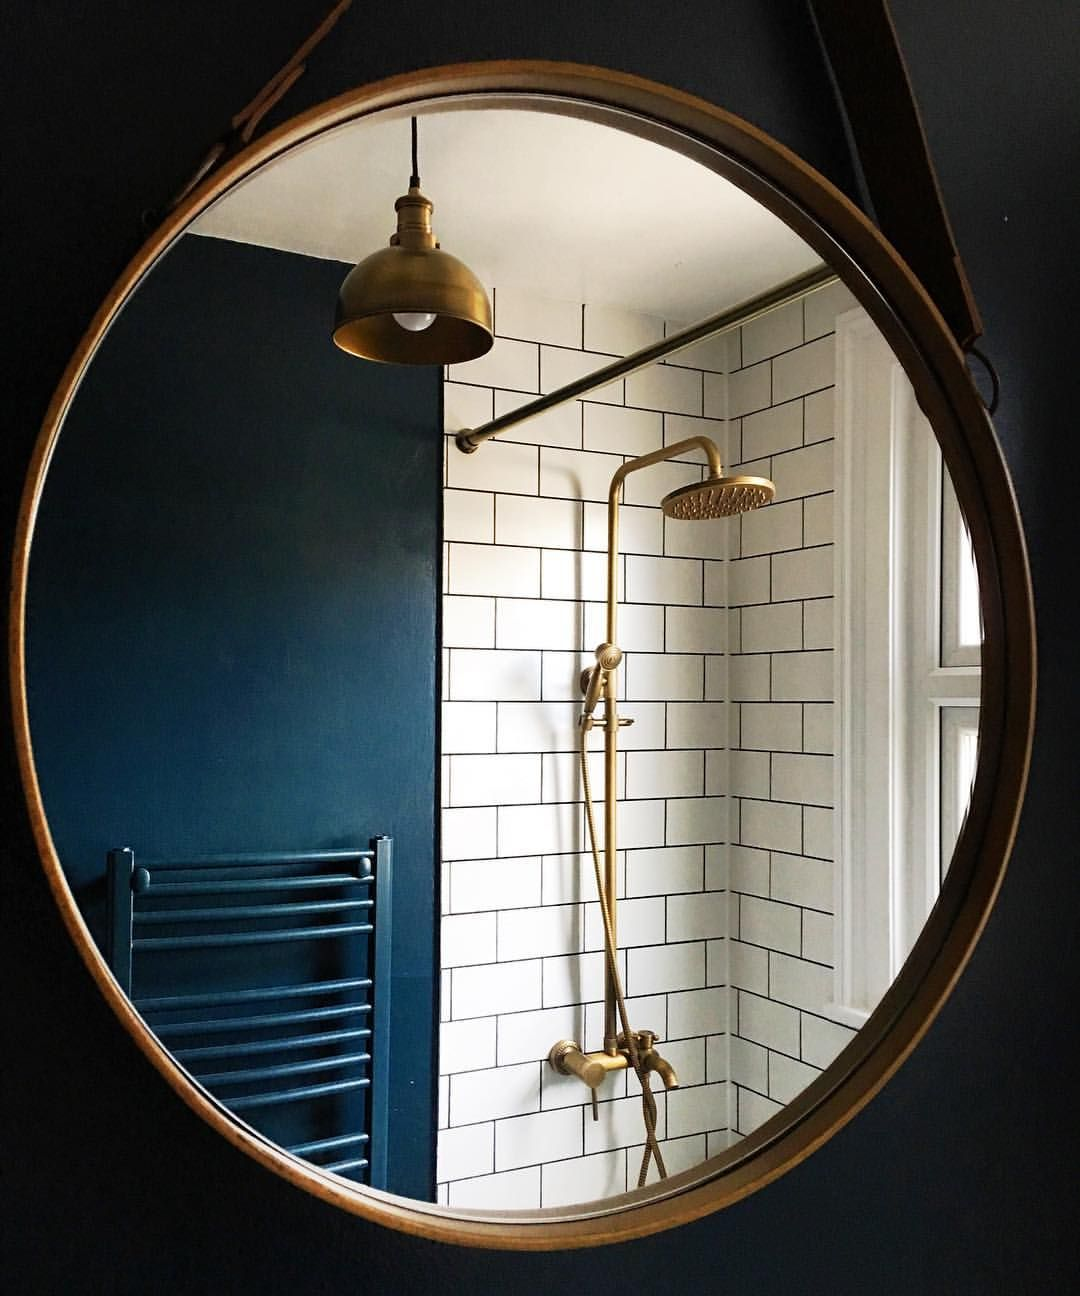 Best Farrow And Ball Hague Blue Walls With Copper Pipes In 400 x 300